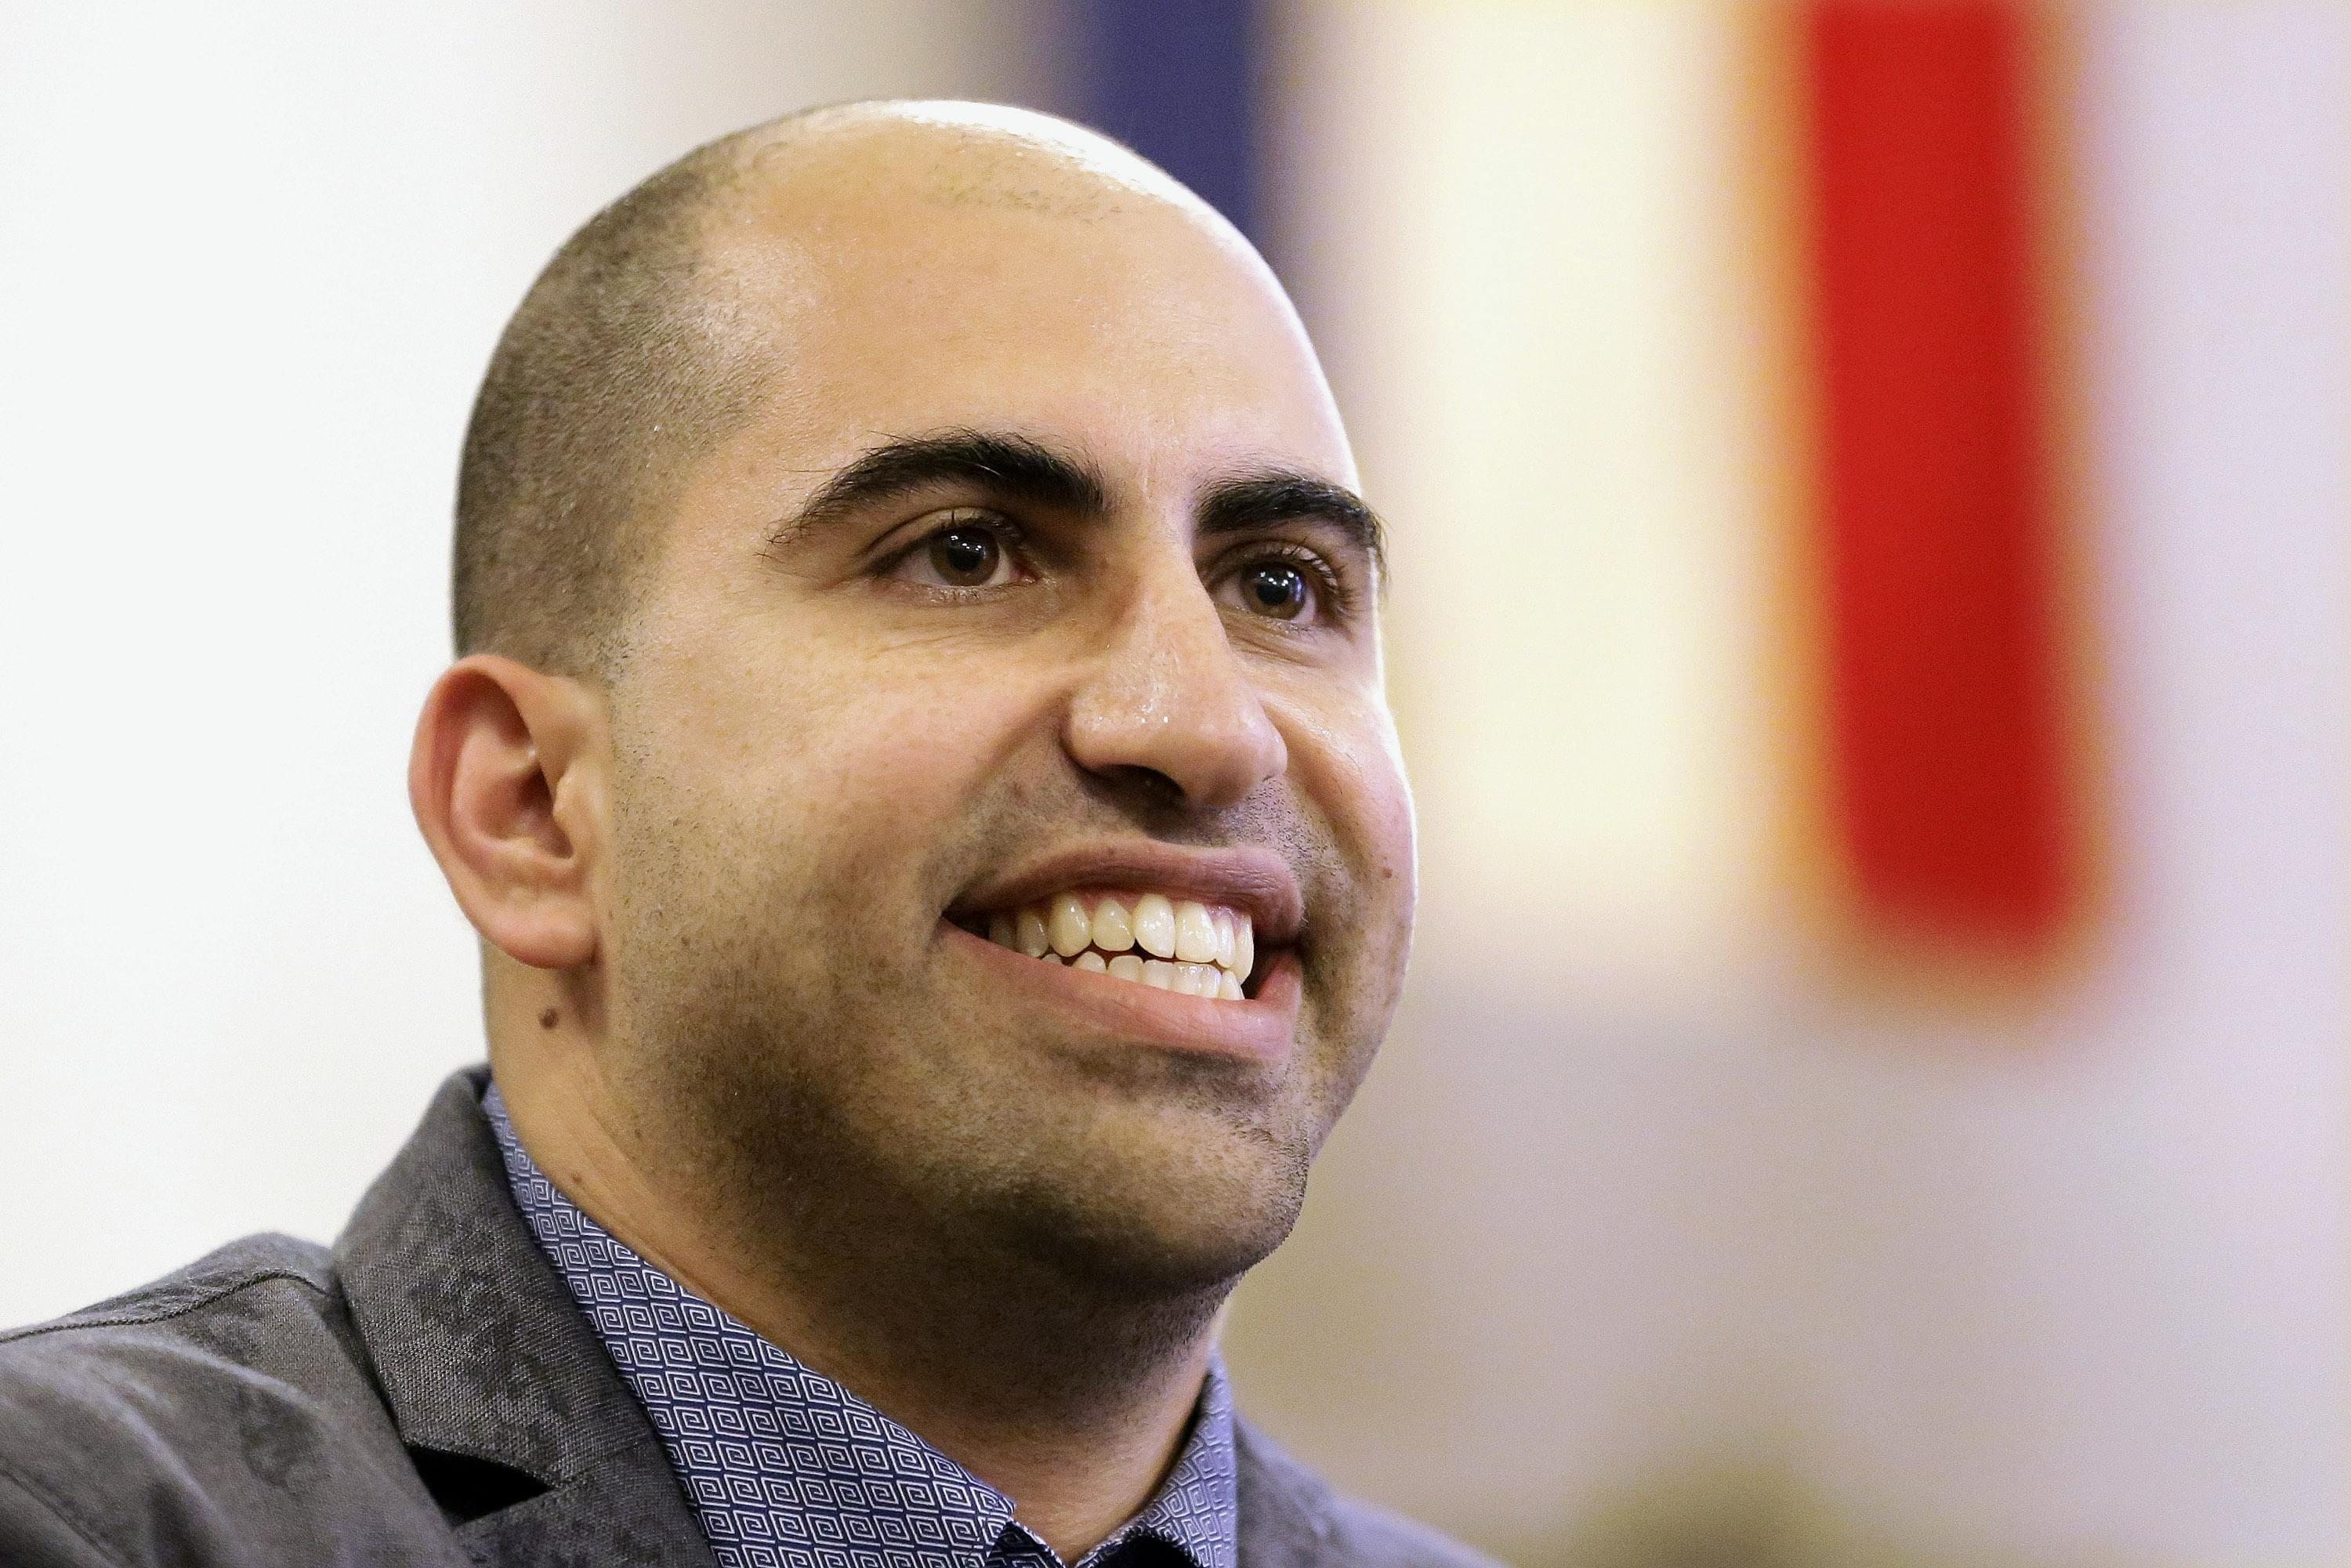 Steven Salaita speaks during a news conference in Champaign in September.